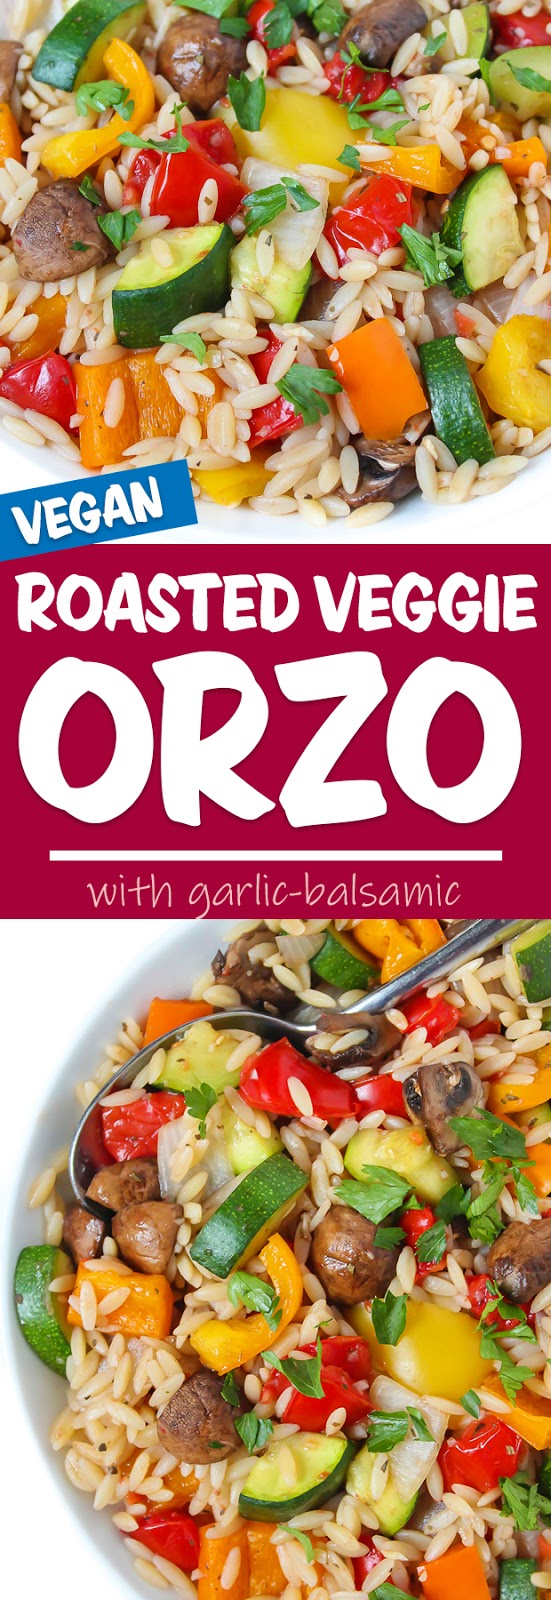 photo collage of roasted vegetable orzo